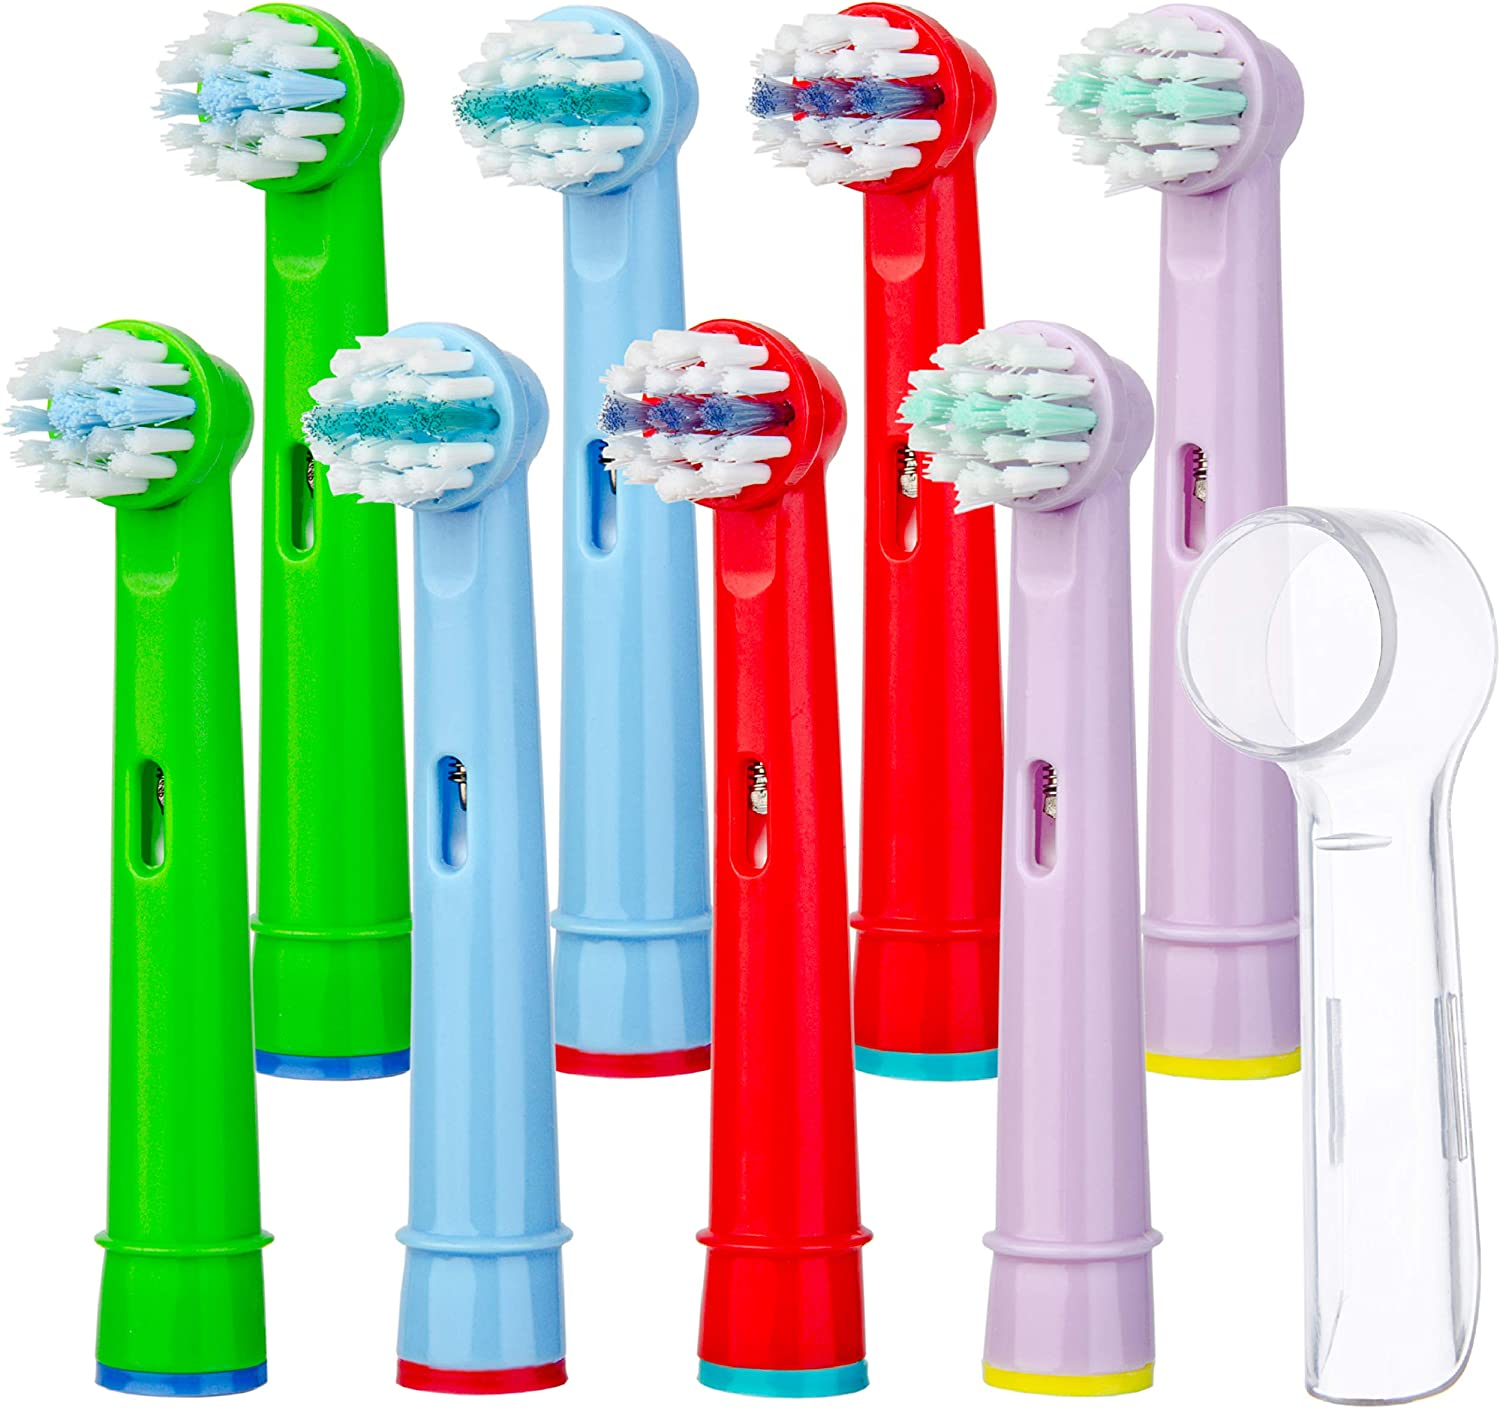 NISTAL Toothbrush Heads for Children 8pcs Oral b Compatible Kids Brush Head Replacement with Cover